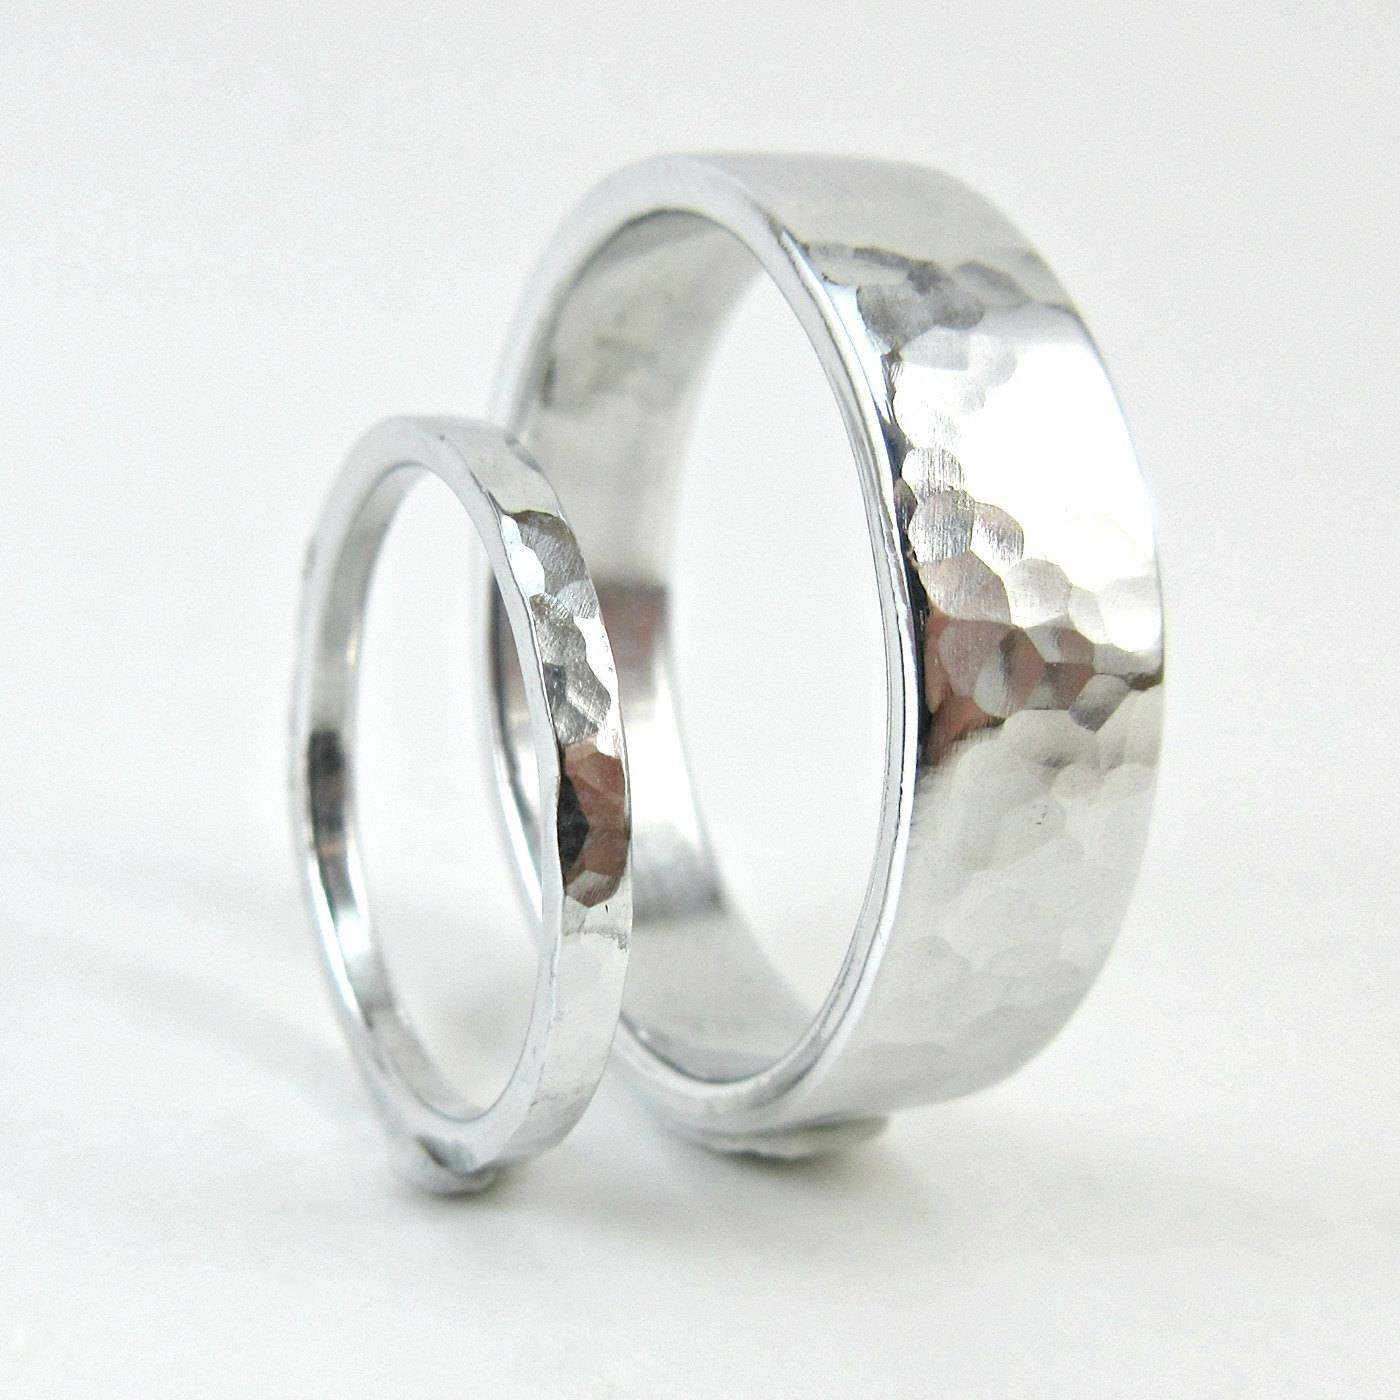 Hammered Aluminum Ring Set 10 Year Anniversary Bands His And Within Traditional Style Engagement Rings (View 13 of 15)